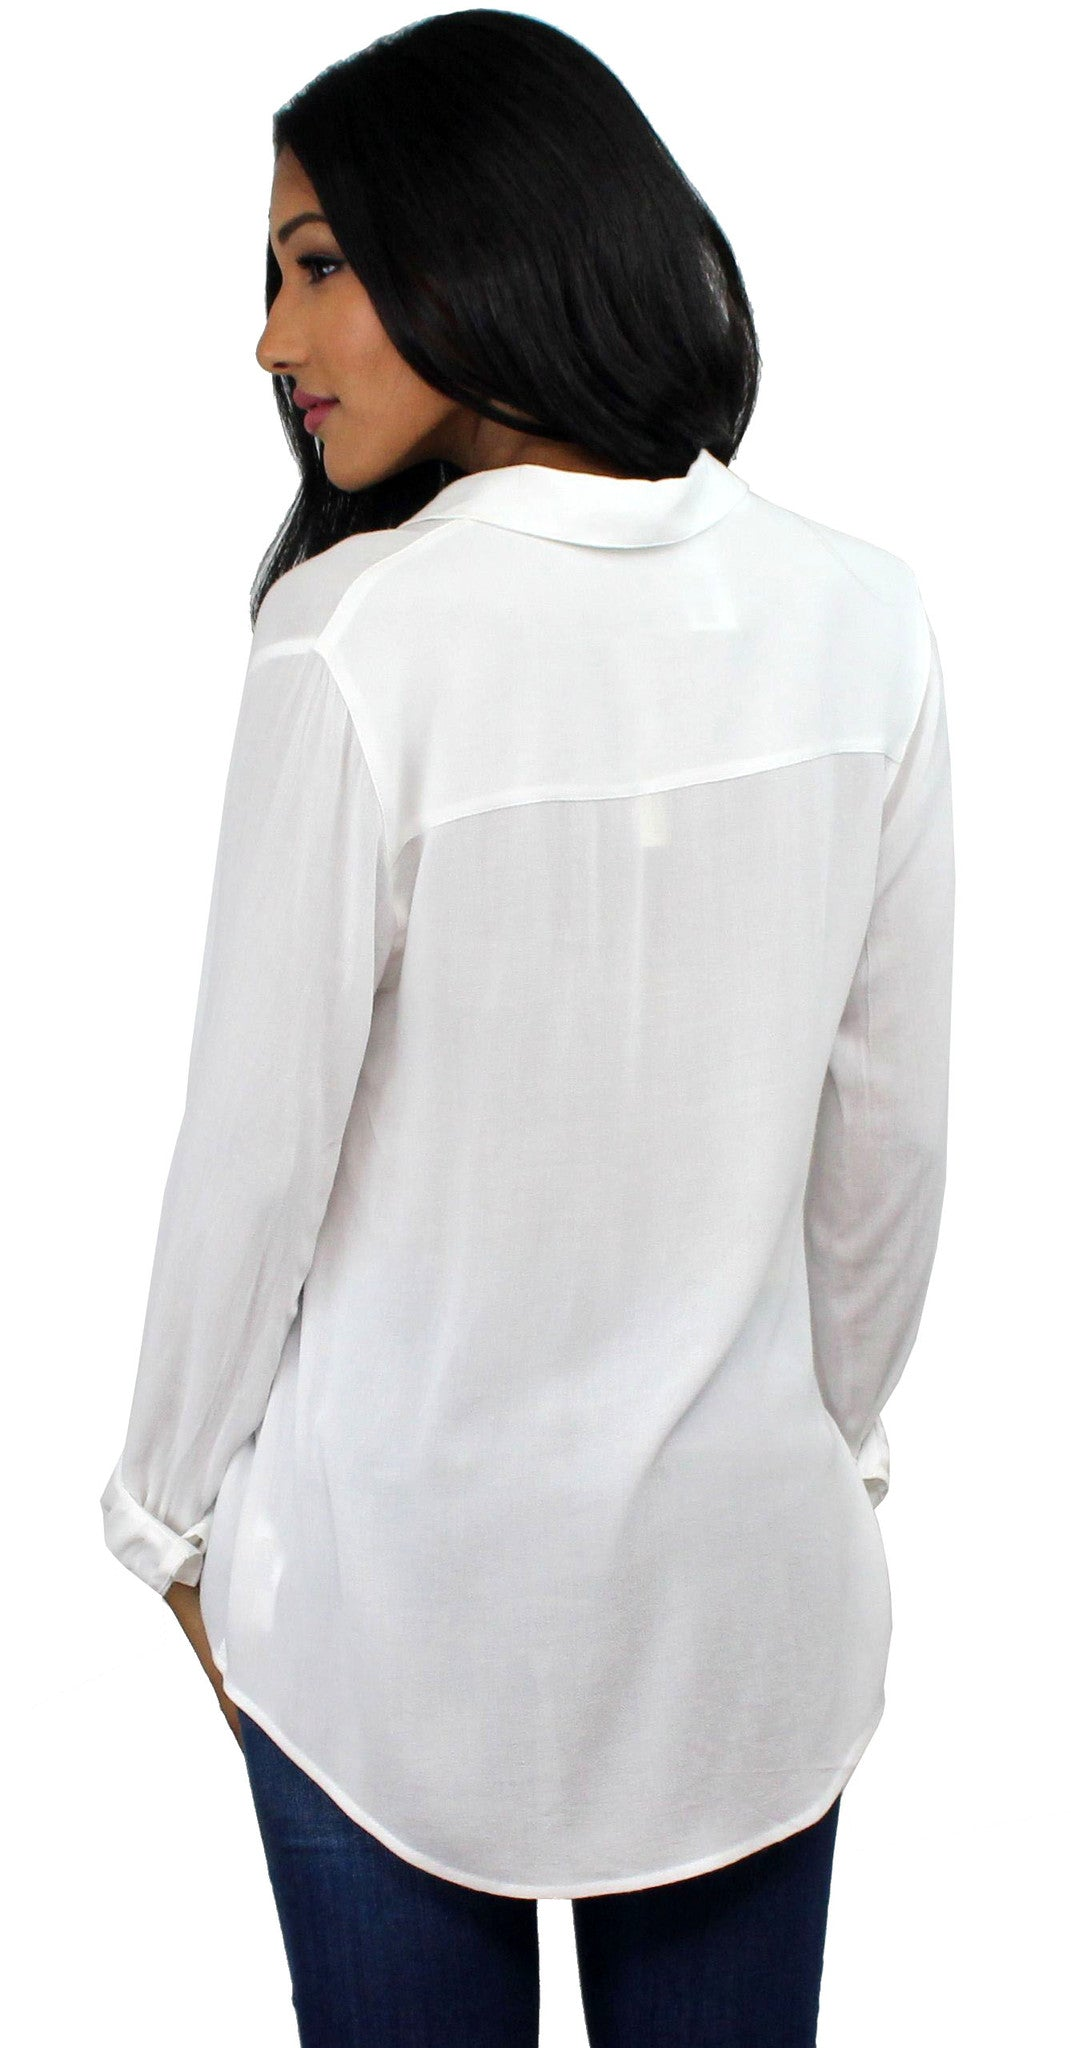 Simple Times White Long Sleeve Top